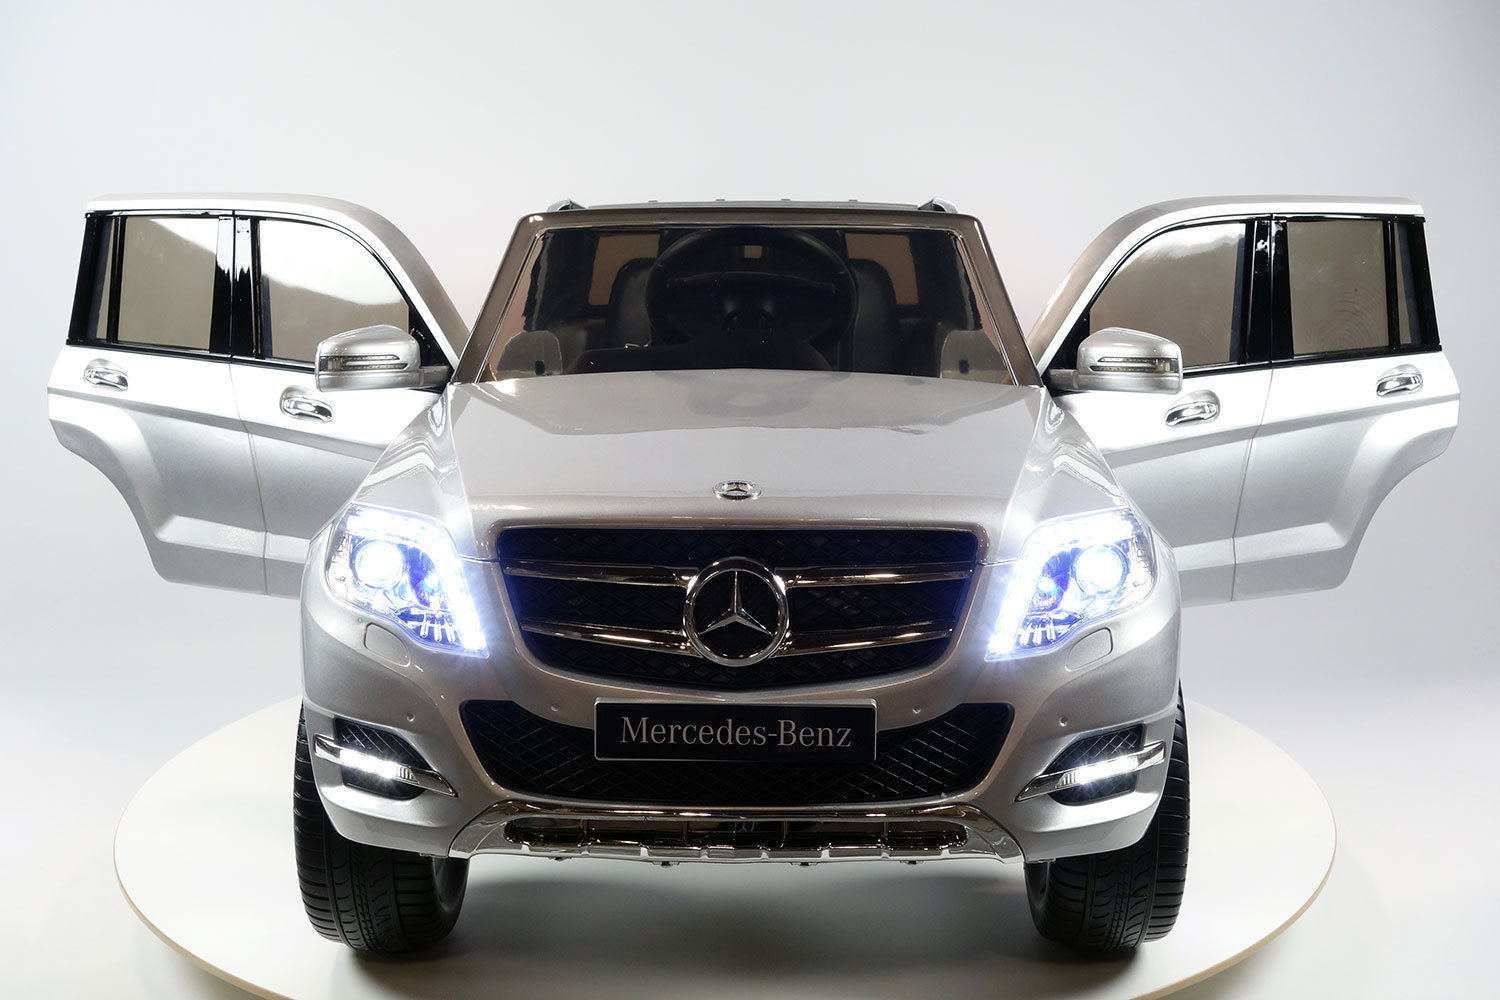 Mercedes benz glk300 4matic kids ride on battery powered for Rc mercedes benz